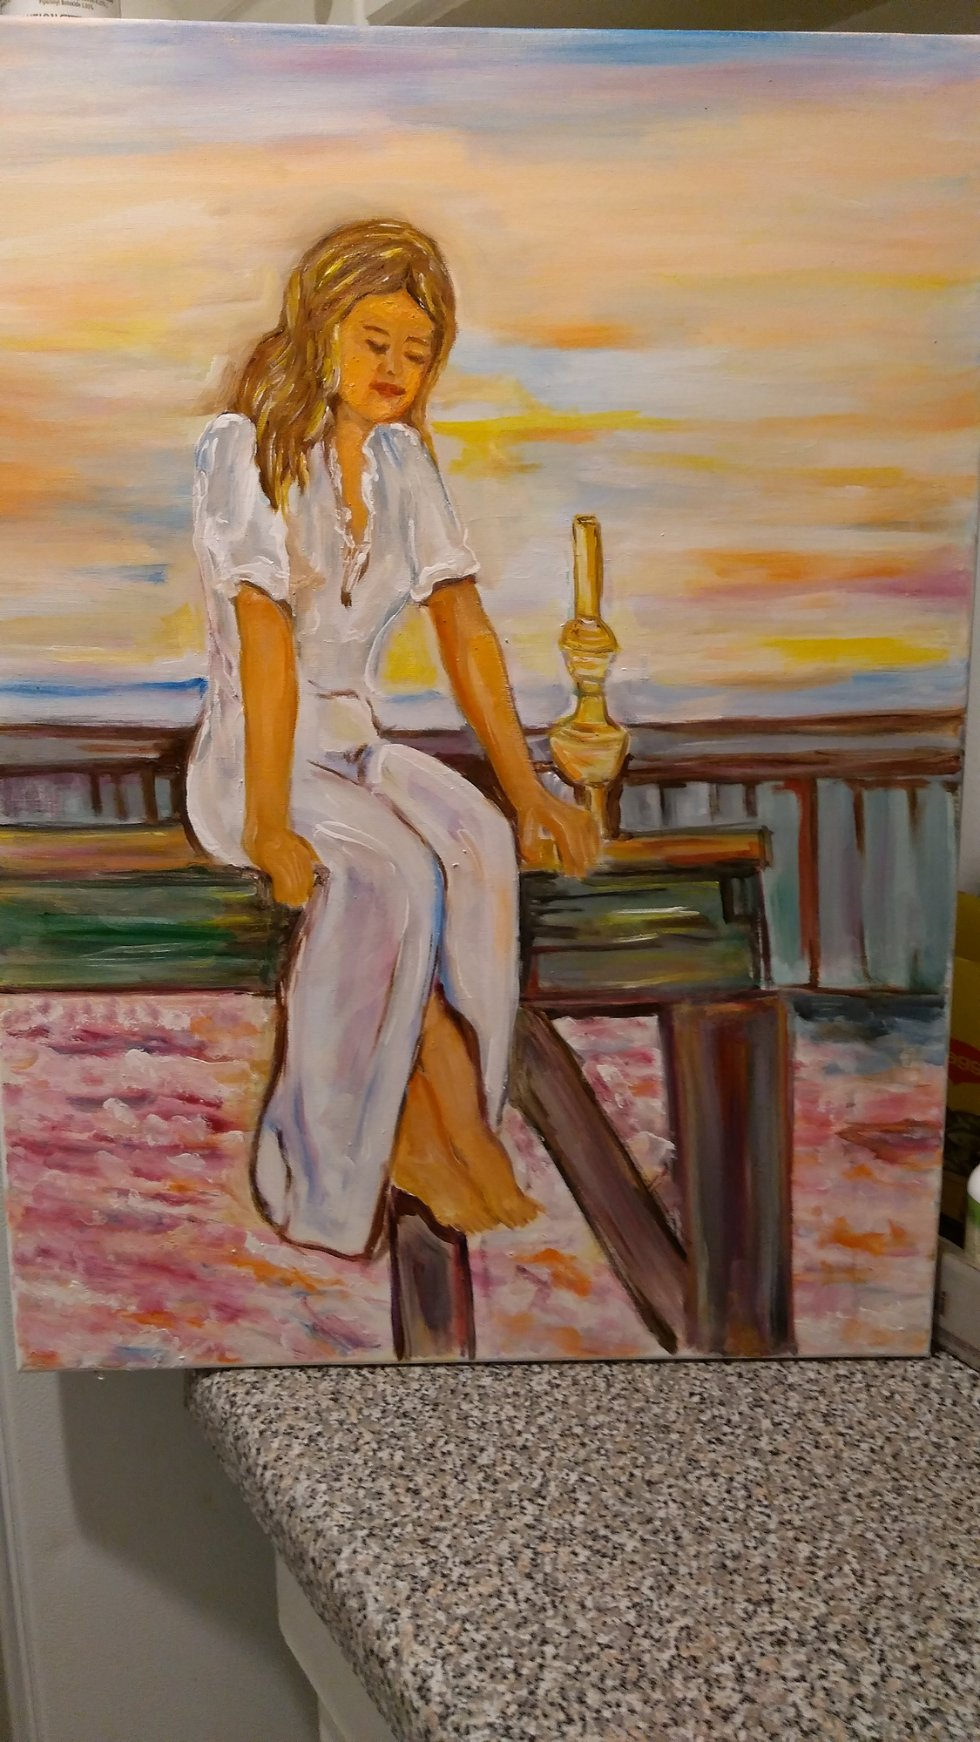 Sunset buty by Salah shahin - Fine painting give impression how the buty United with nature - painting